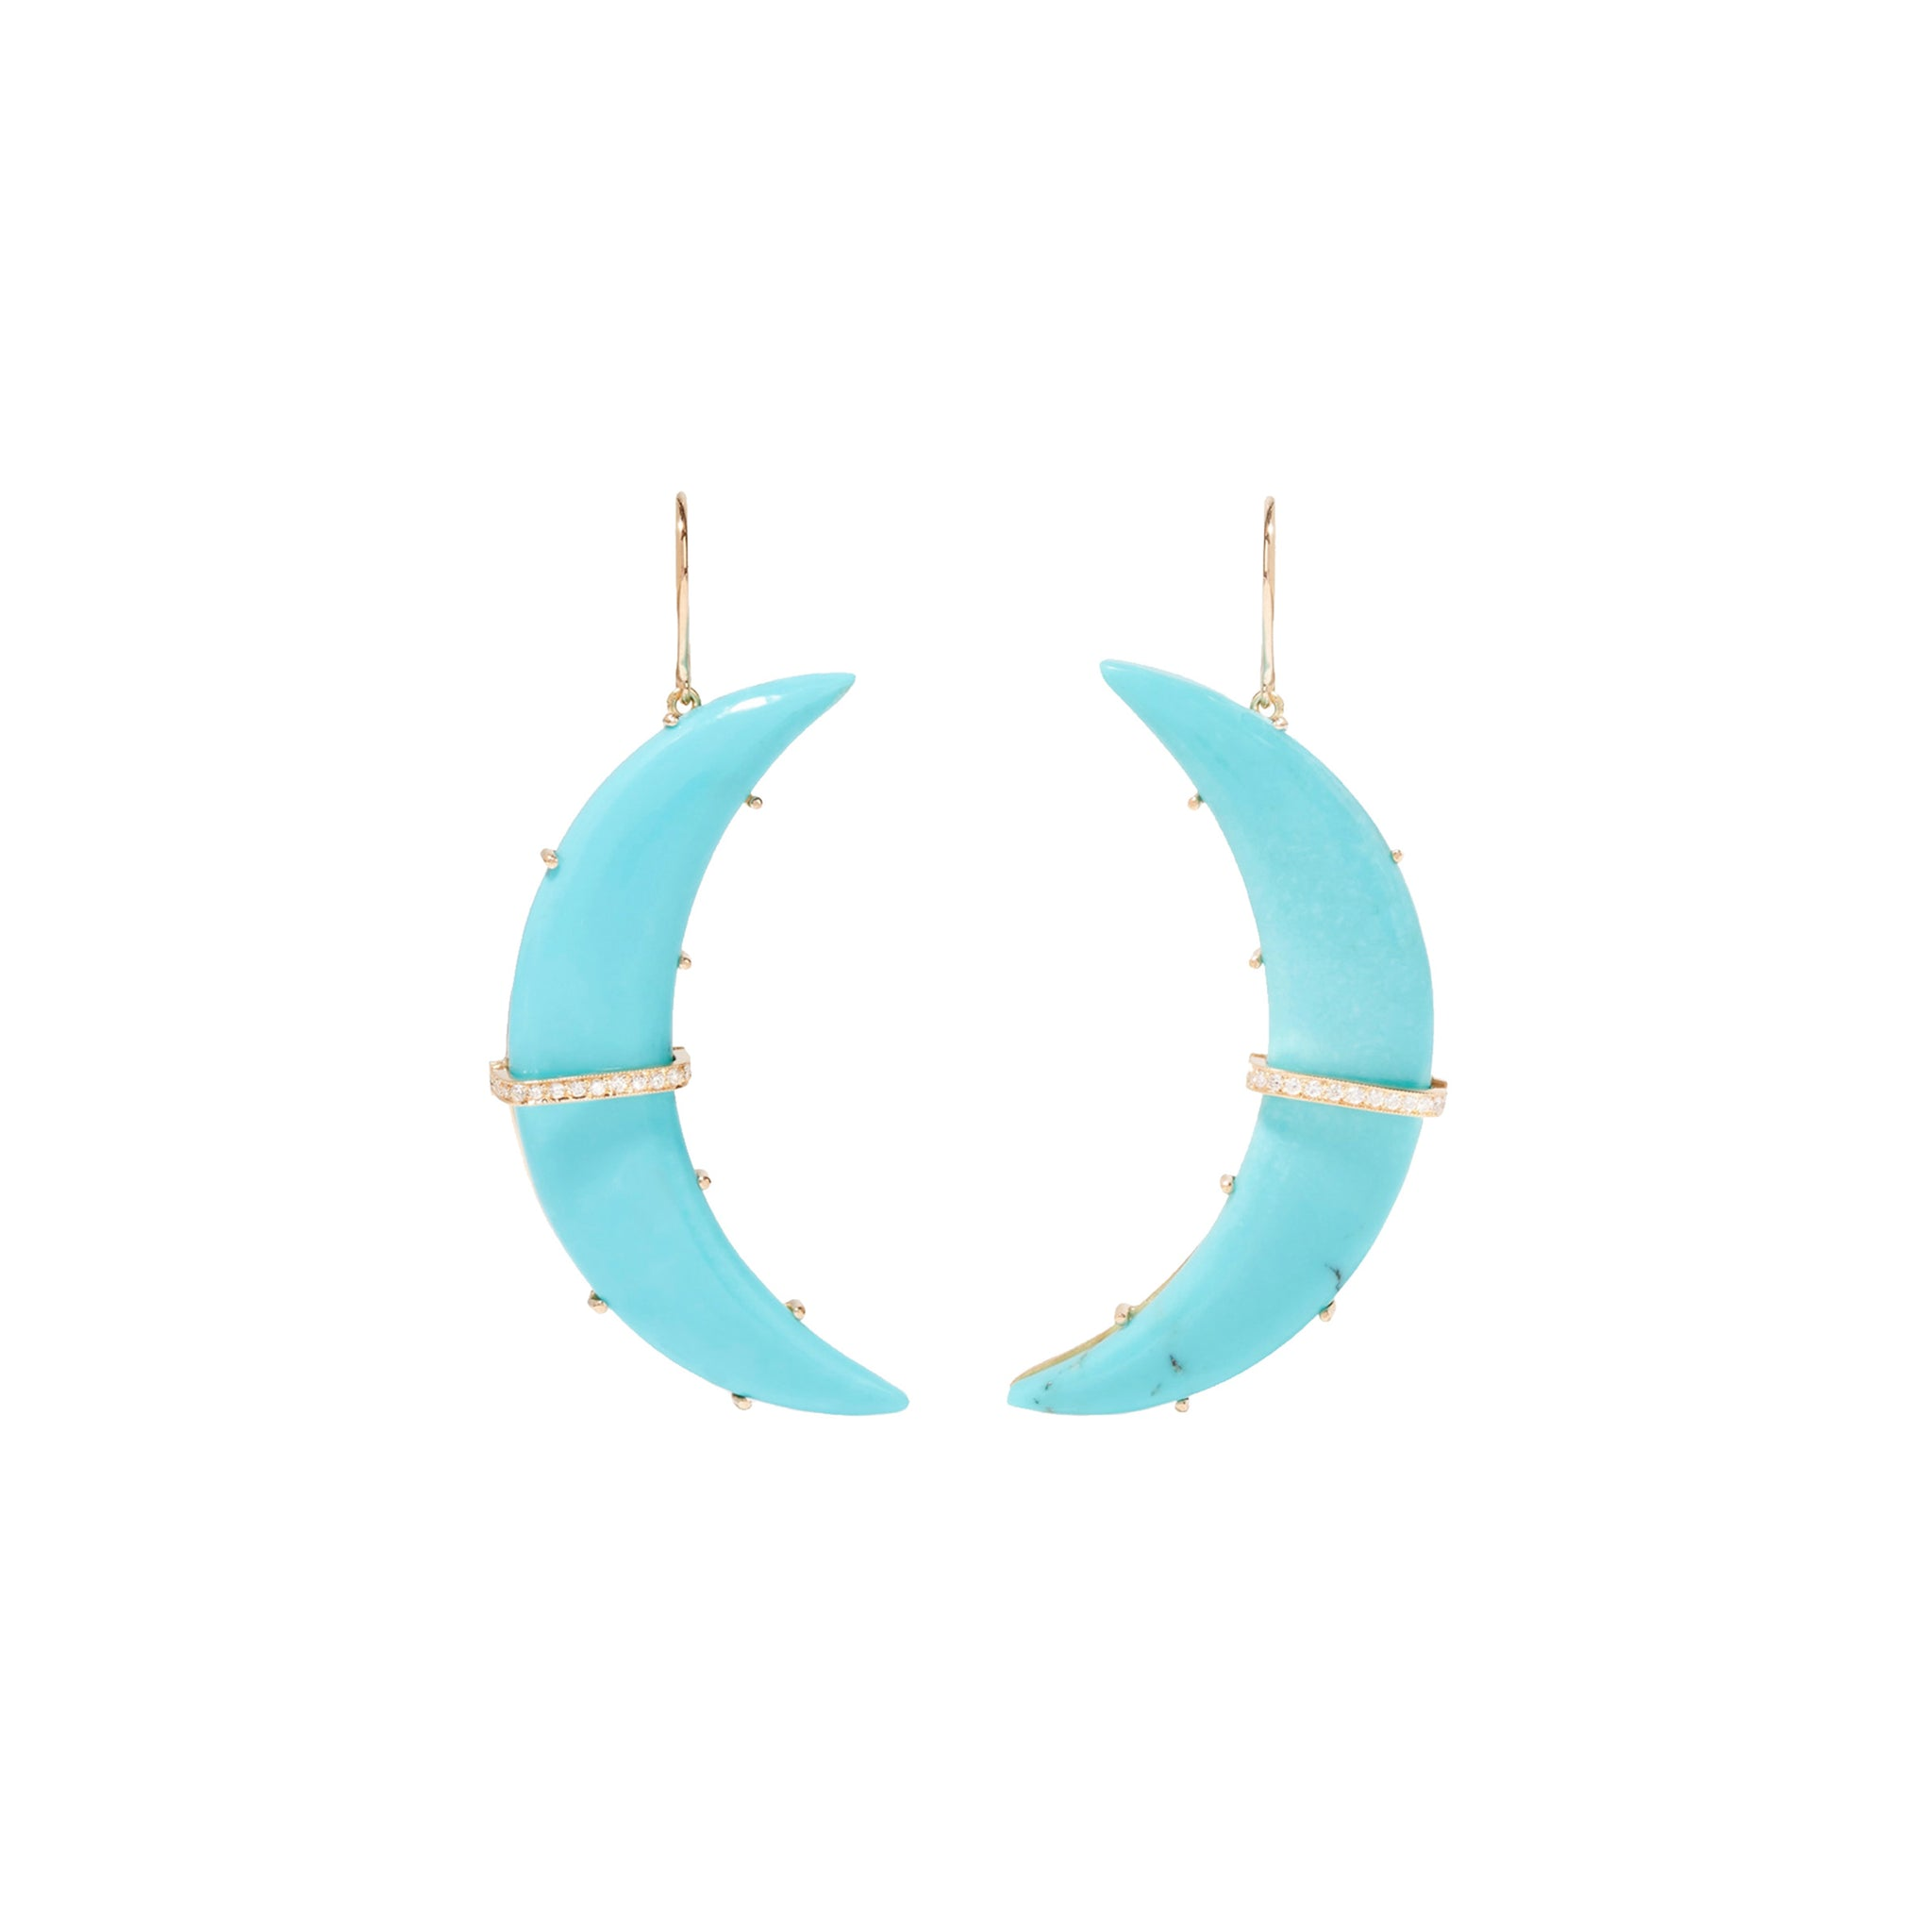 Large Turquoise Astrid Earrings